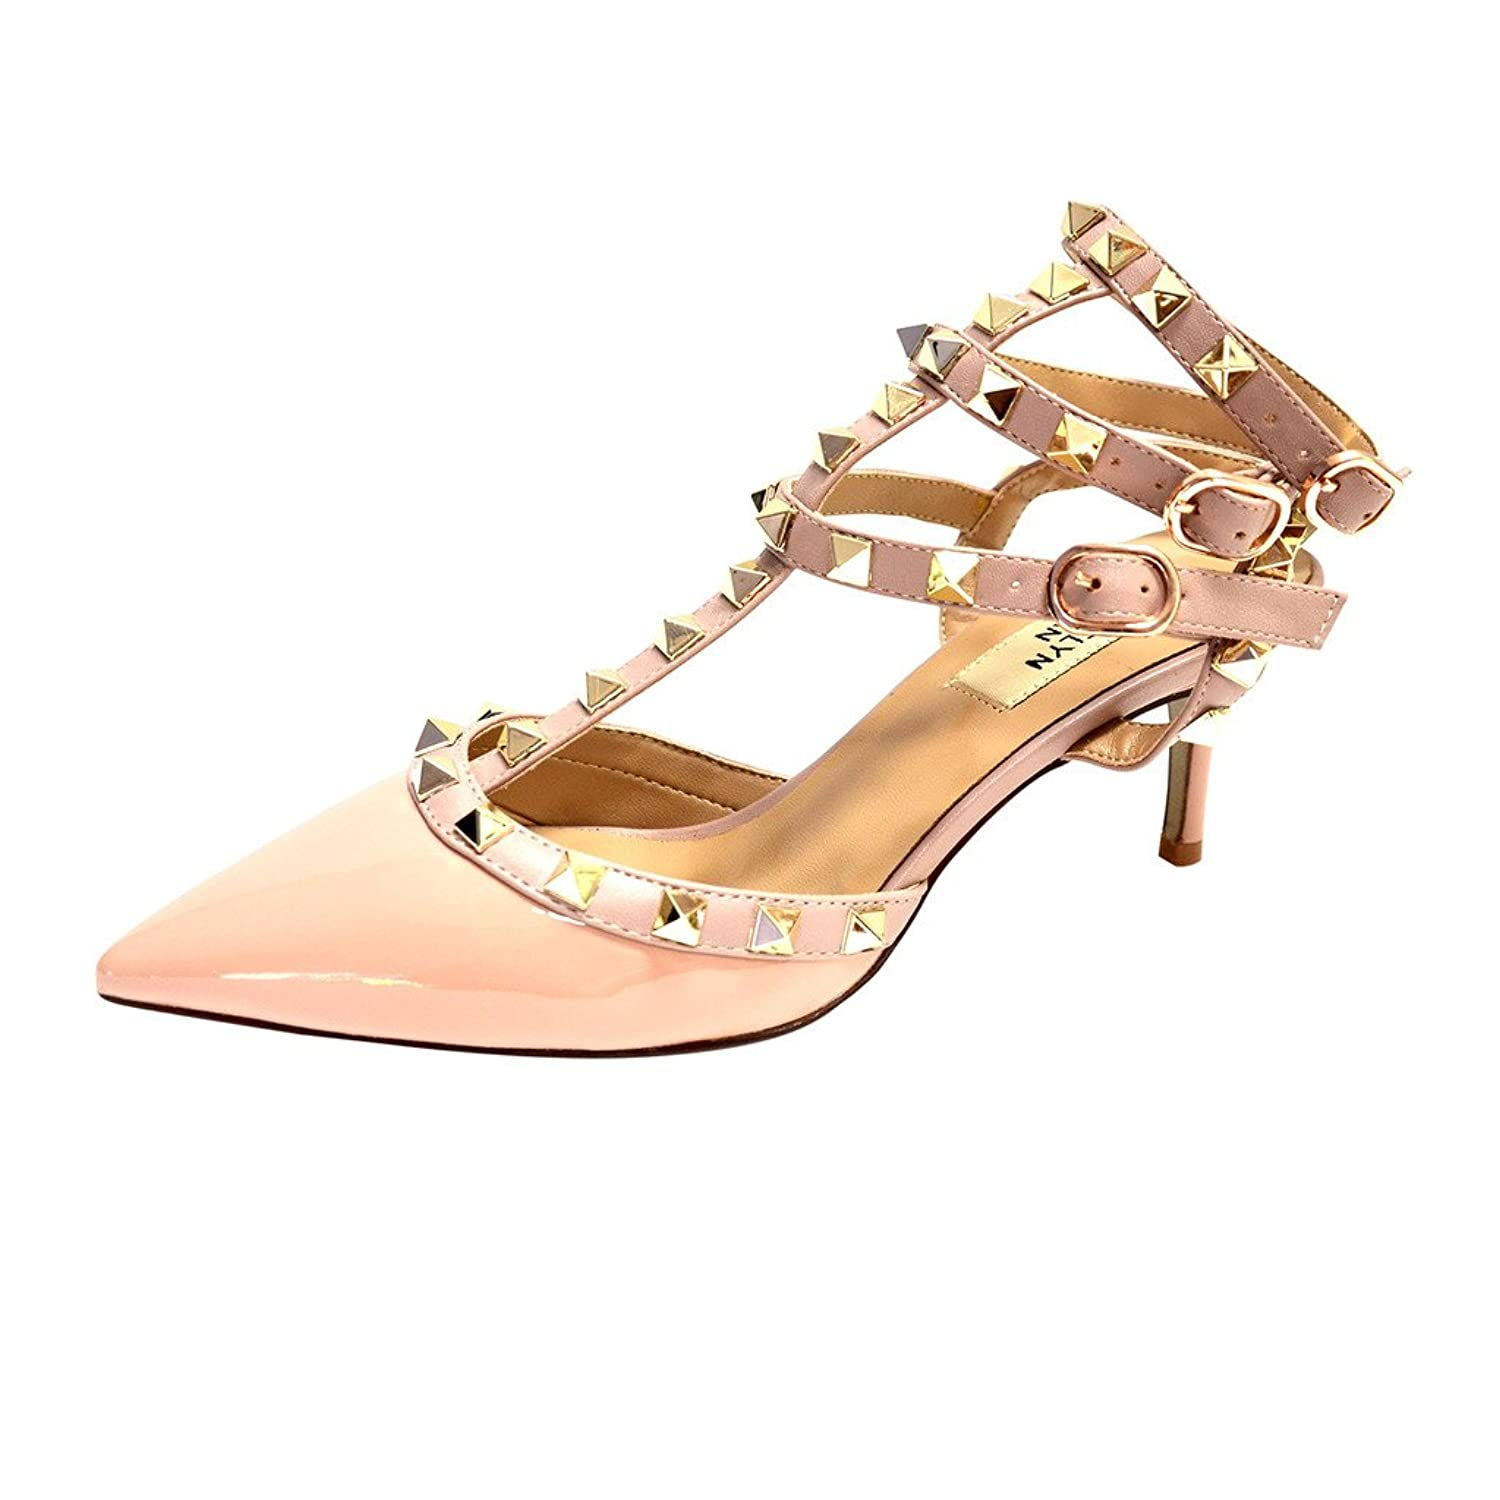 6c2efbfbfd0 Kaitlyn Pan Pointed Toe Studded Strappy Slingback Kitten Heel Leather Pumps  Sandals 30%OFF